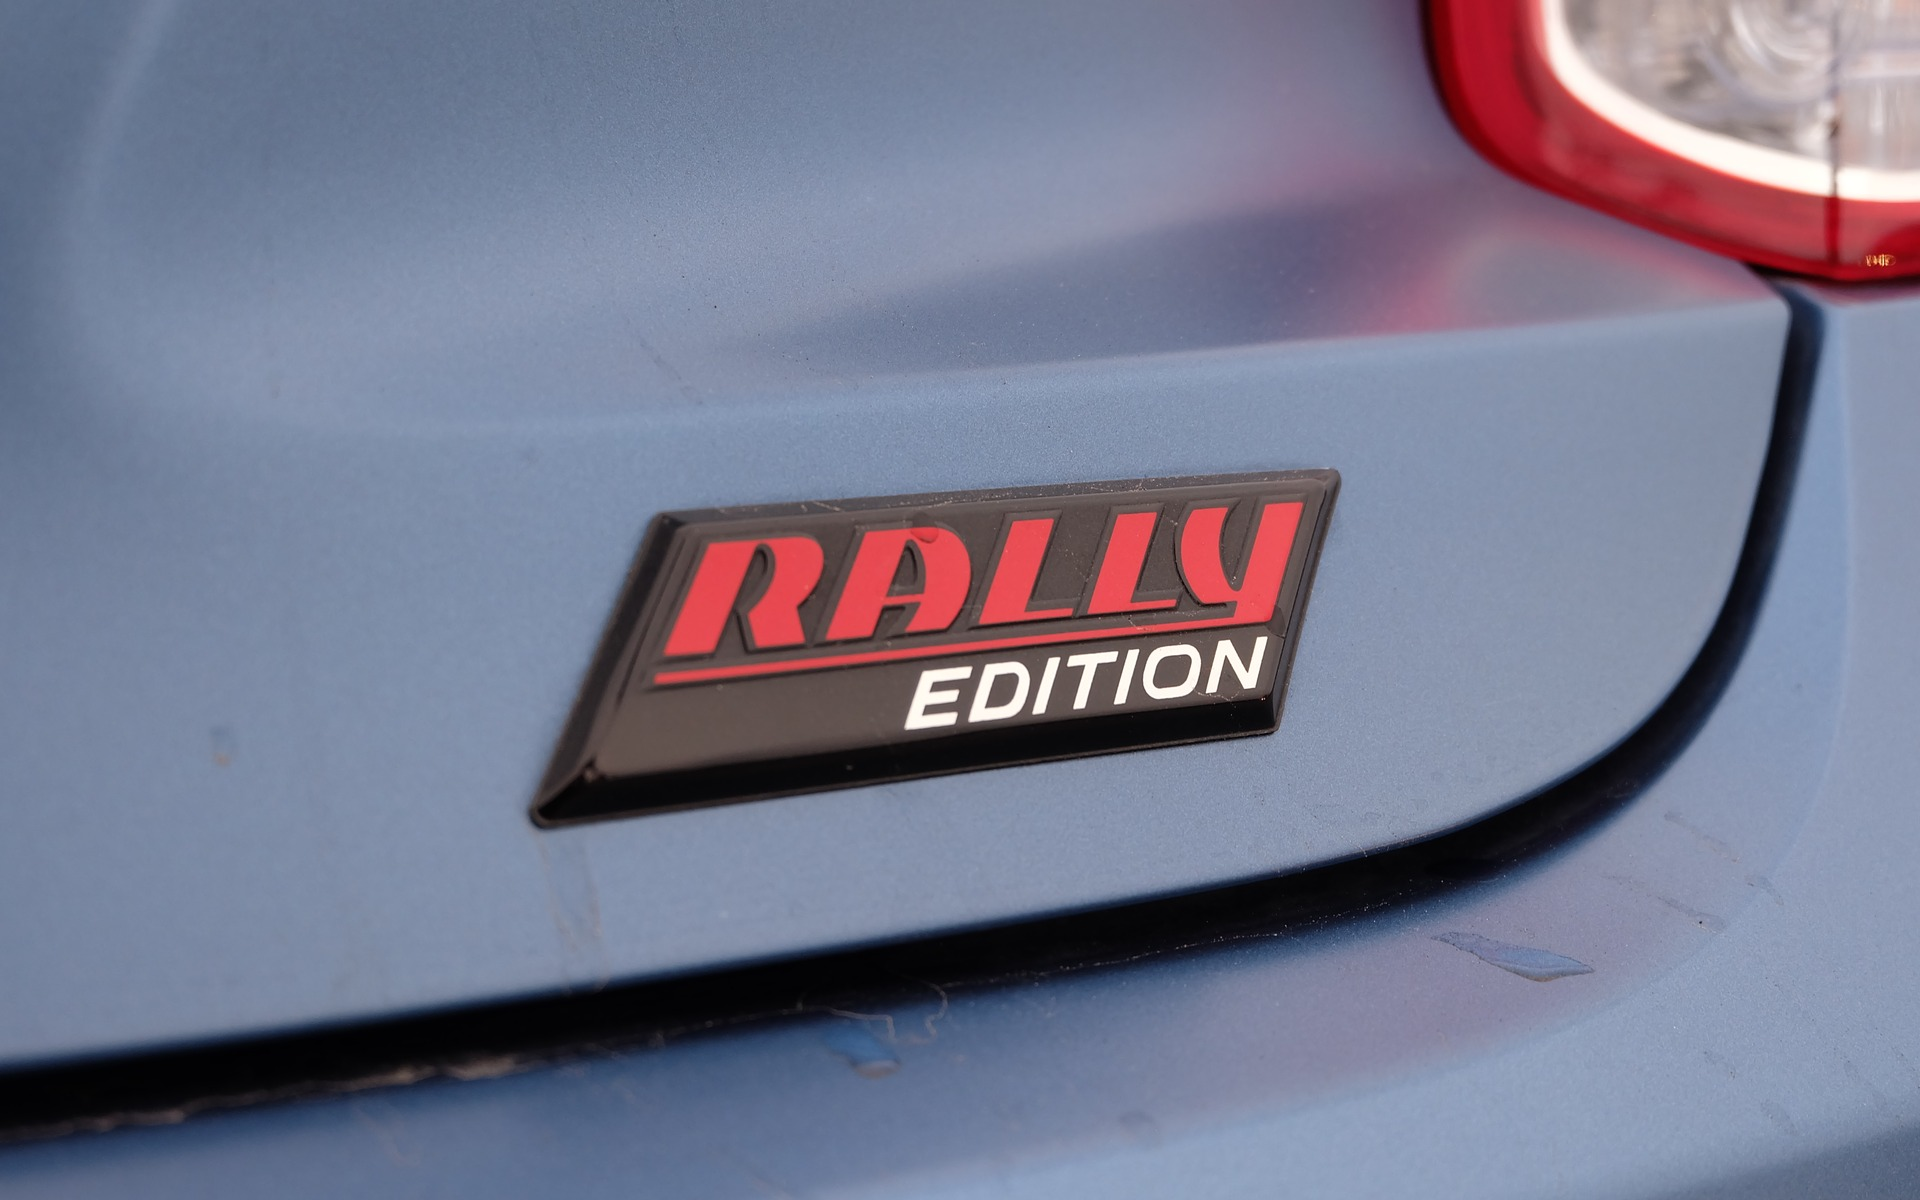 Les badges clament qu'il s'agit de la version Rally